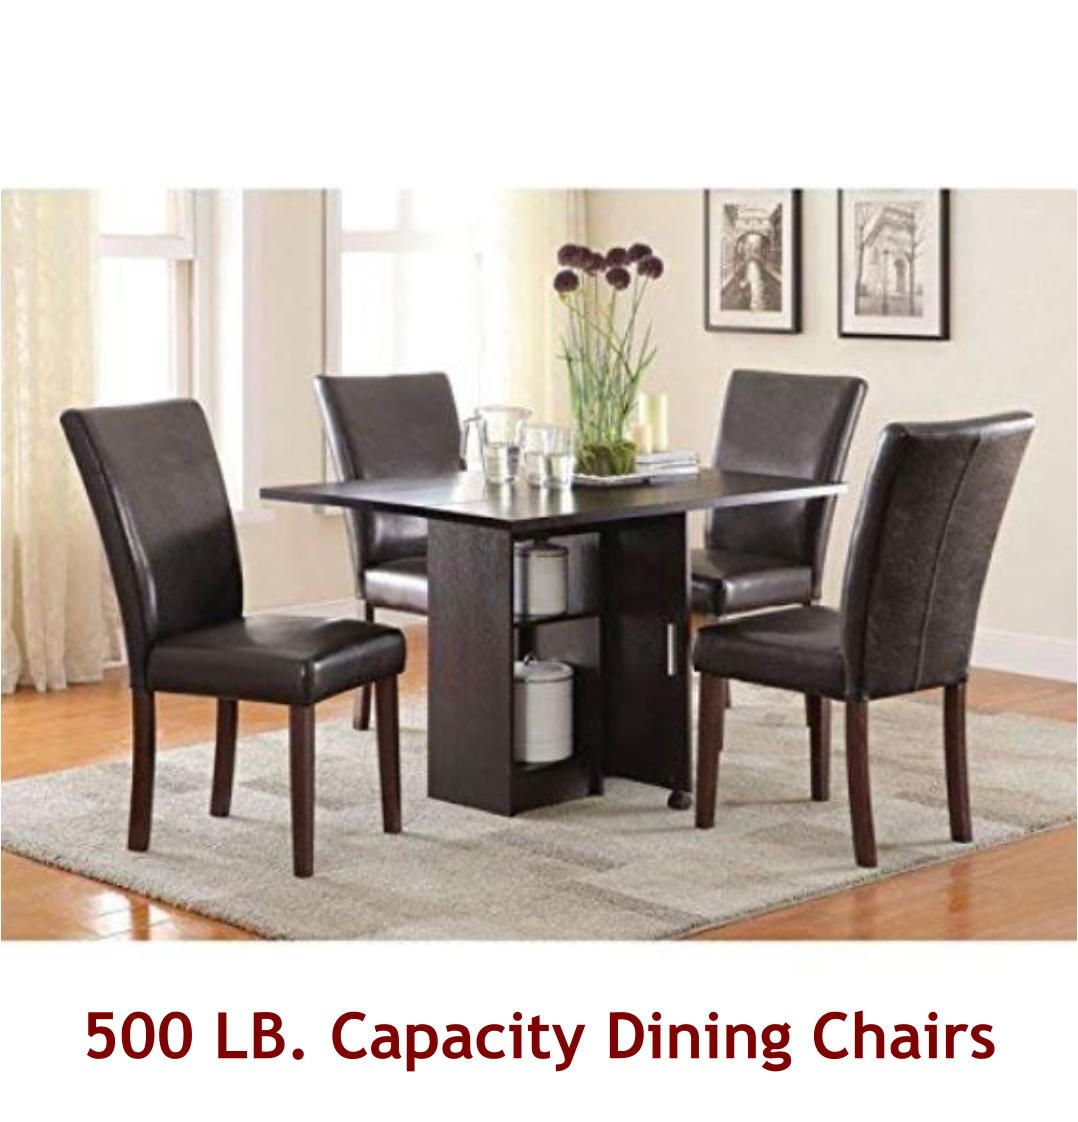 500 Lb Capacity Dining Chairs For The Big And Tall Free Shipping